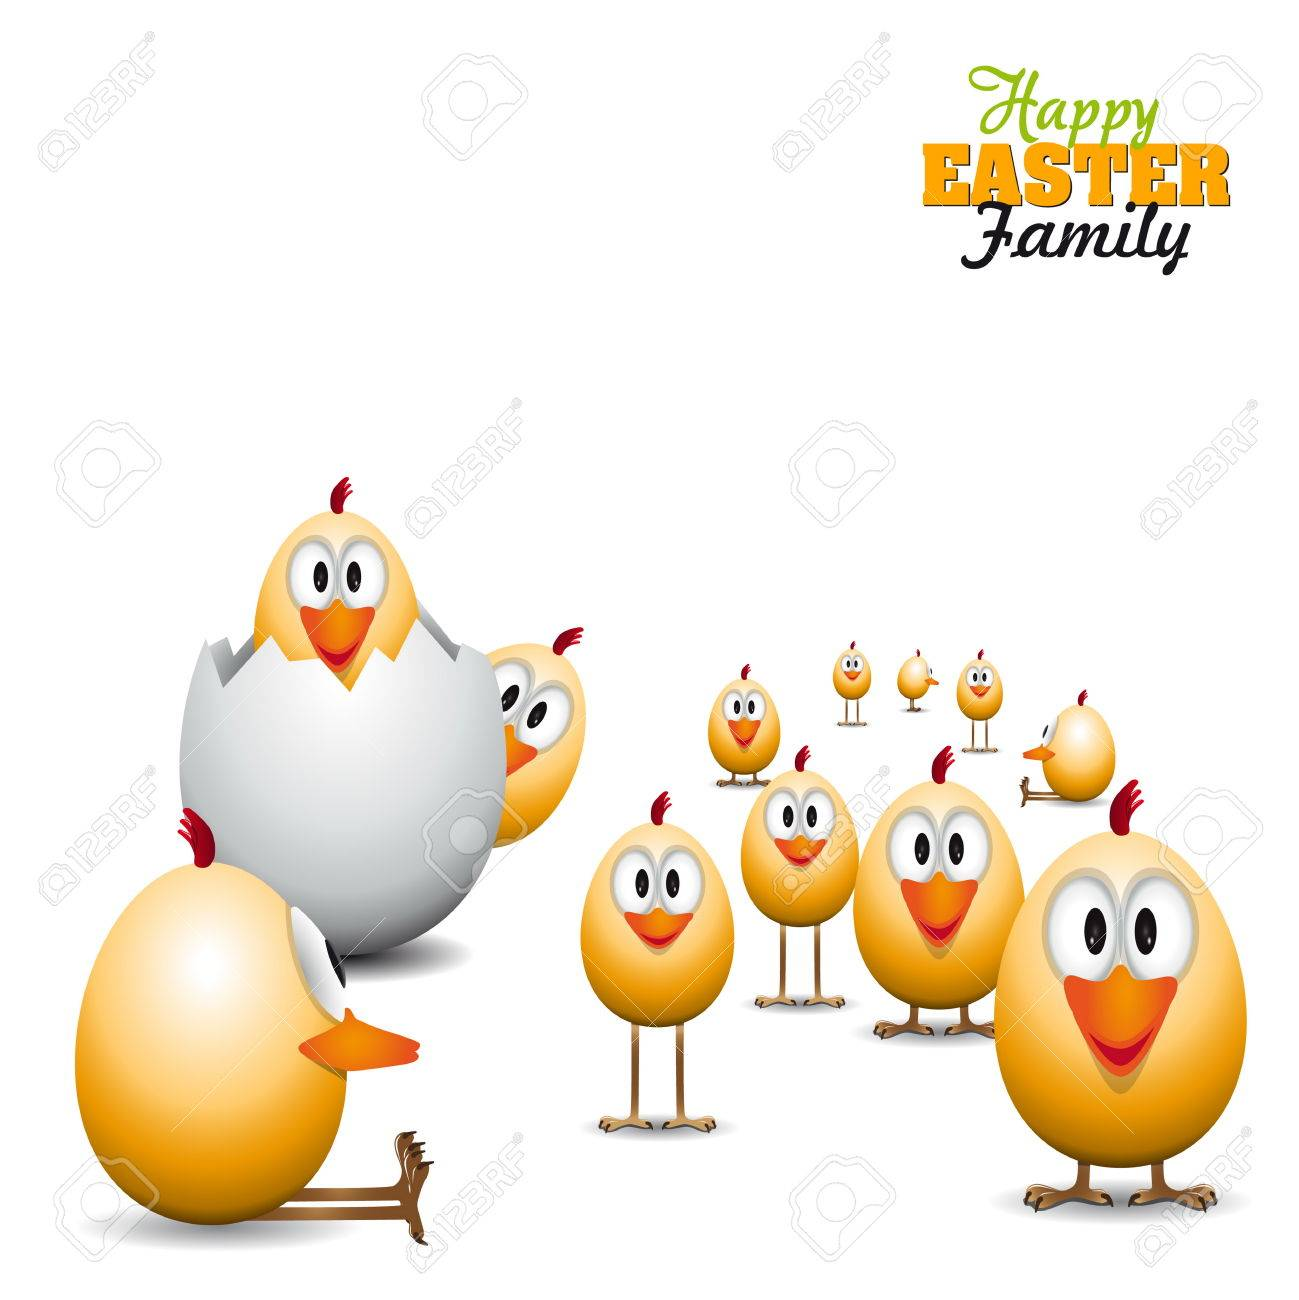 Funny easter eggs chicks background illustration happy easter funny easter eggs chicks background illustration happy easter card stock vector 27735630 kristyandbryce Choice Image